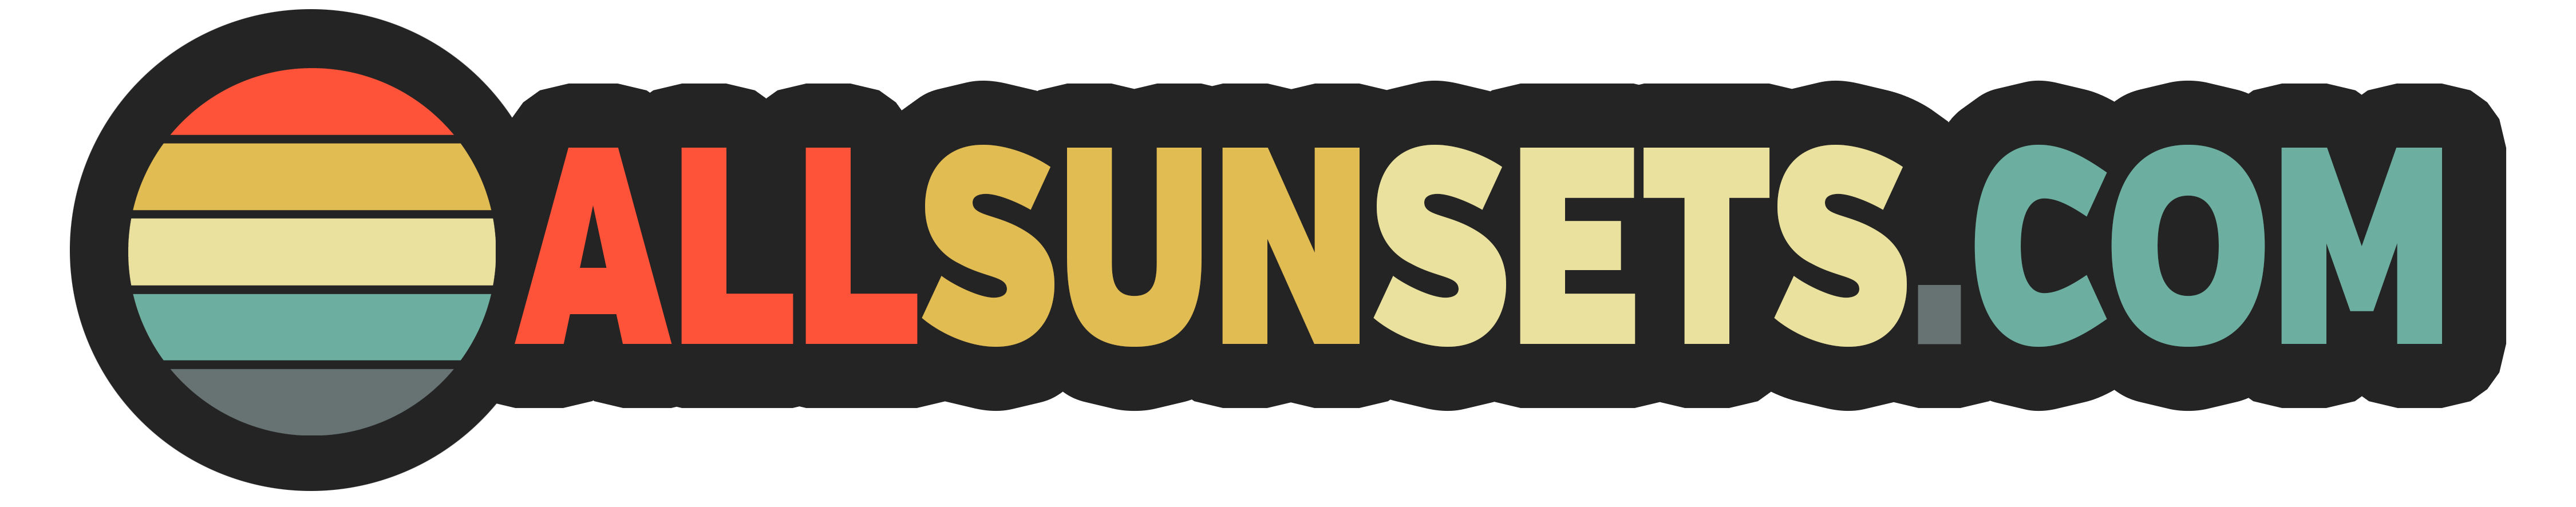 Original sunset or retro graphics for you to download